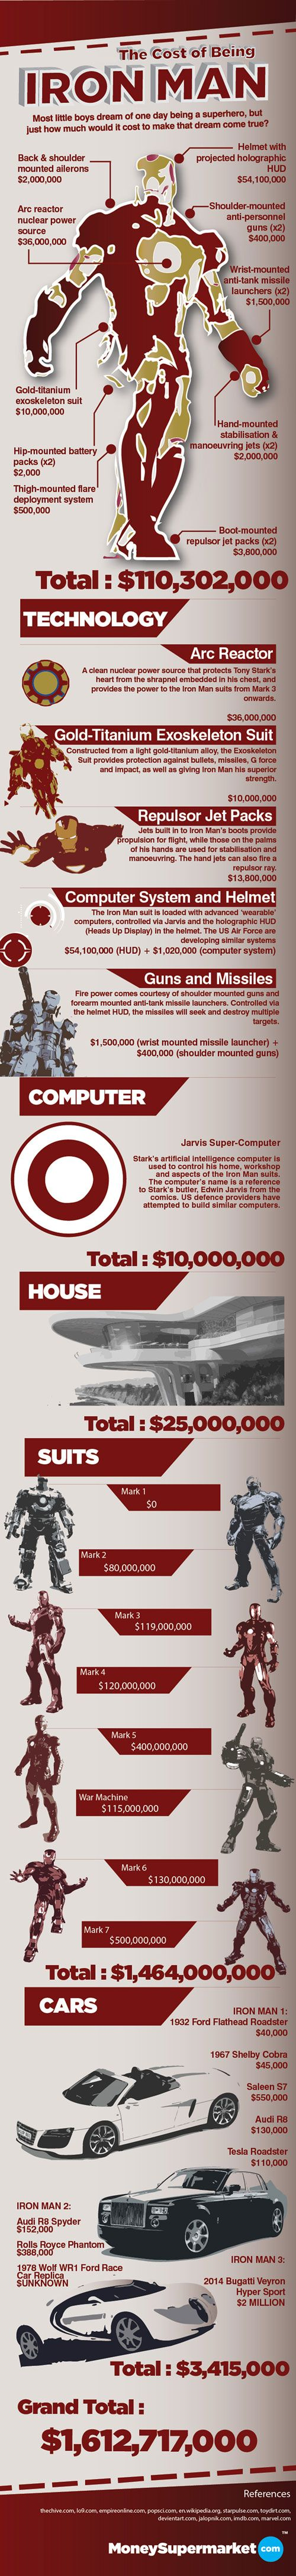 Total Cost of Being Iron Man is $1,612,717,000 Dollars - Move over Bruce Wayne/Batman. Tony Stark shows whose boss when it comes to the big bucks. Check out the infographic.